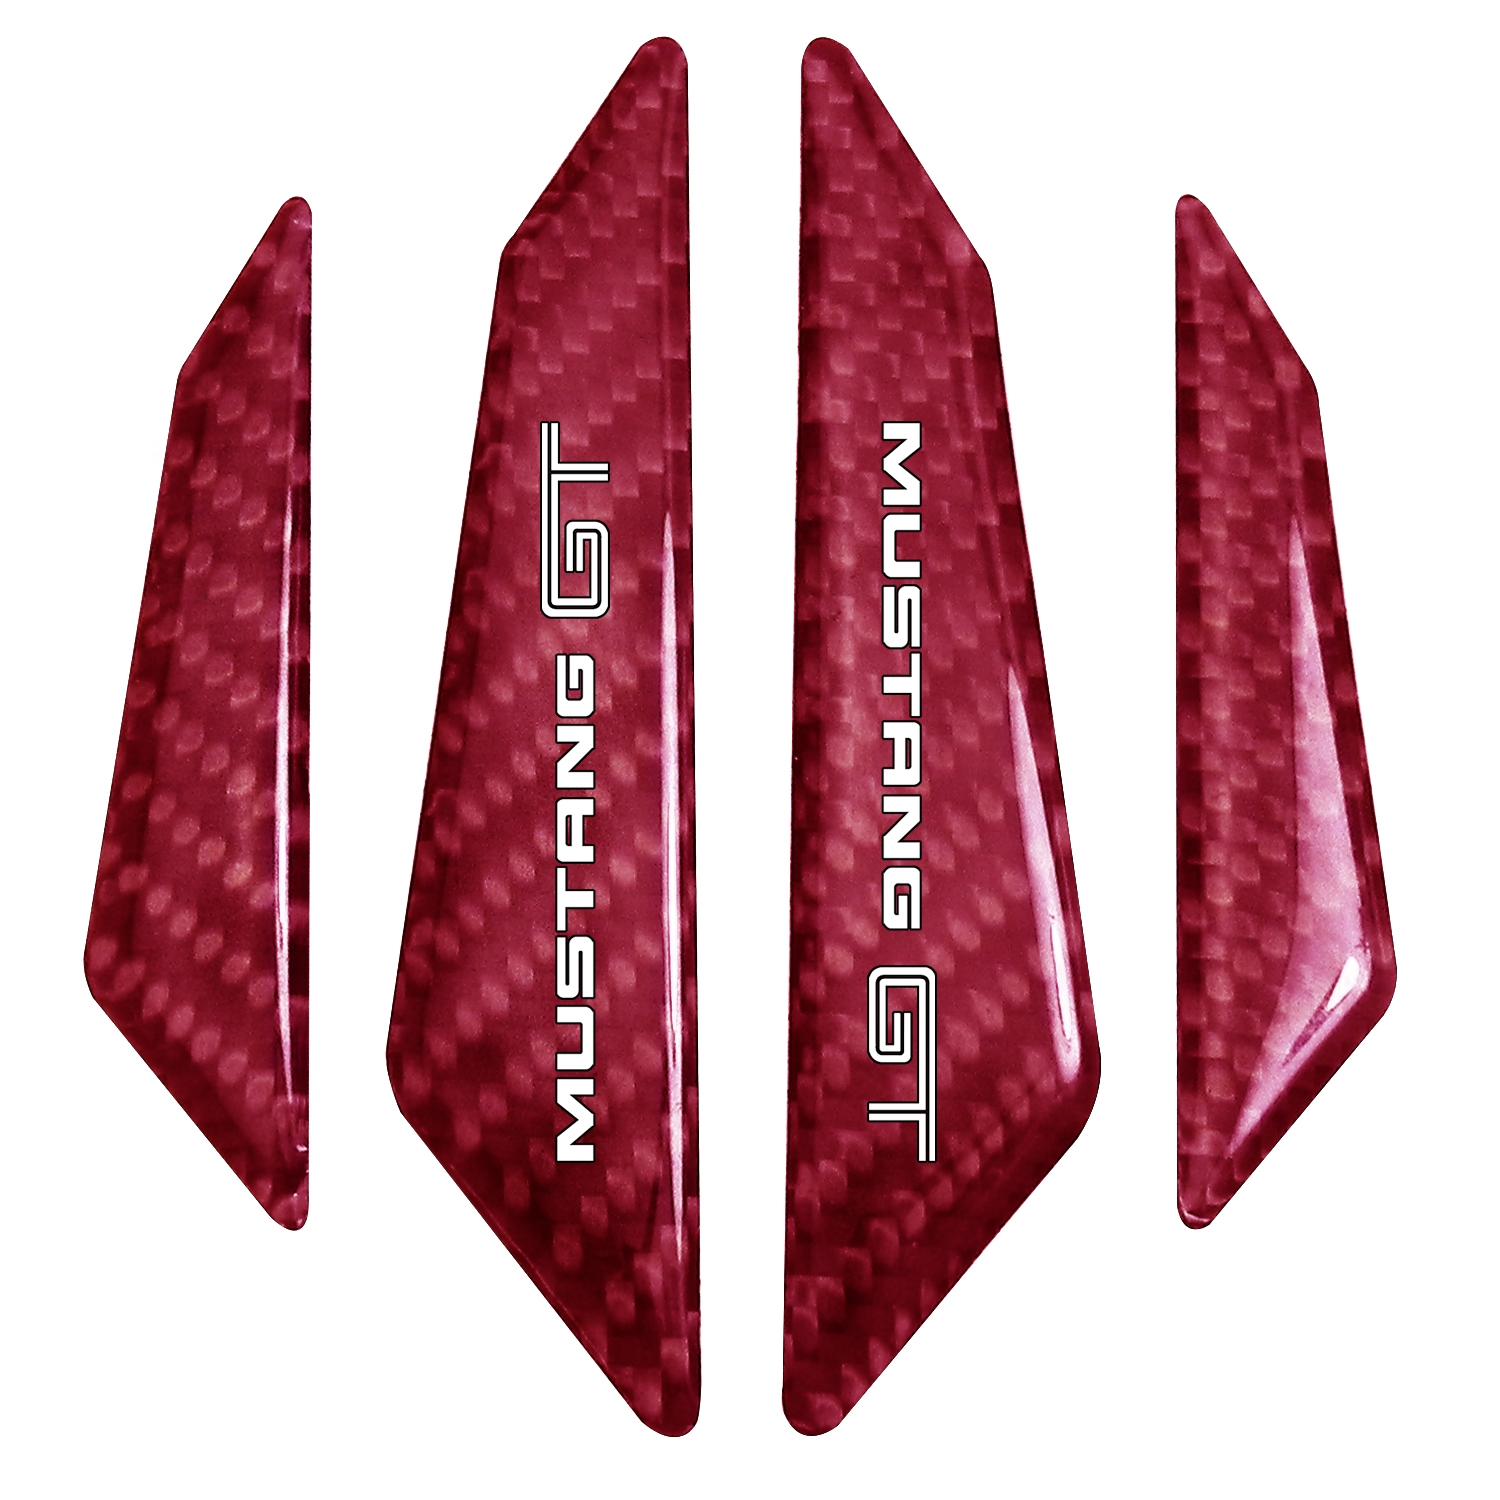 Ford Mustang Script Real Red Carbon Fiber Door Edge Guard Decal